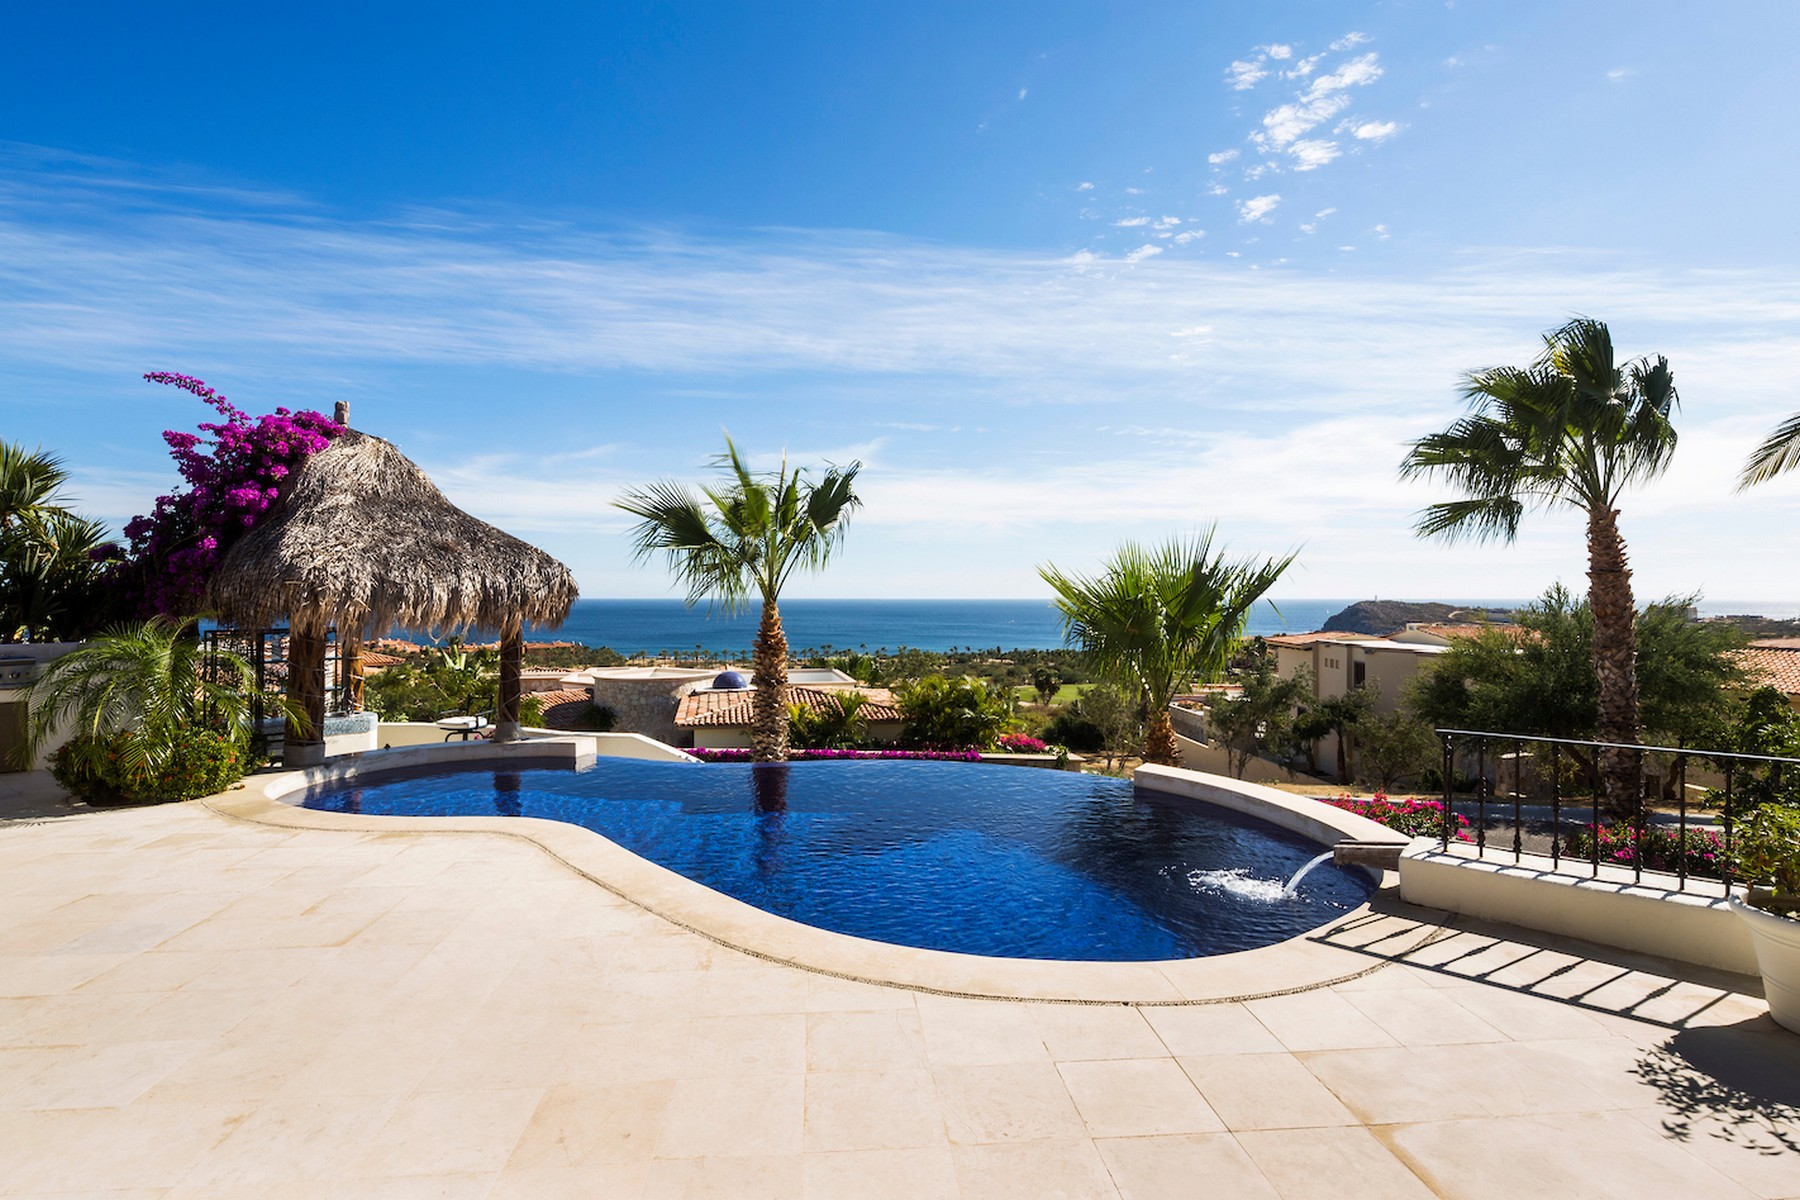 Additional photo for property listing at Casa Buena Vida Las Colinas Lote 34 Casa Buena Vida Cabo San Lucas, Baja California Sur 23455 Mexico